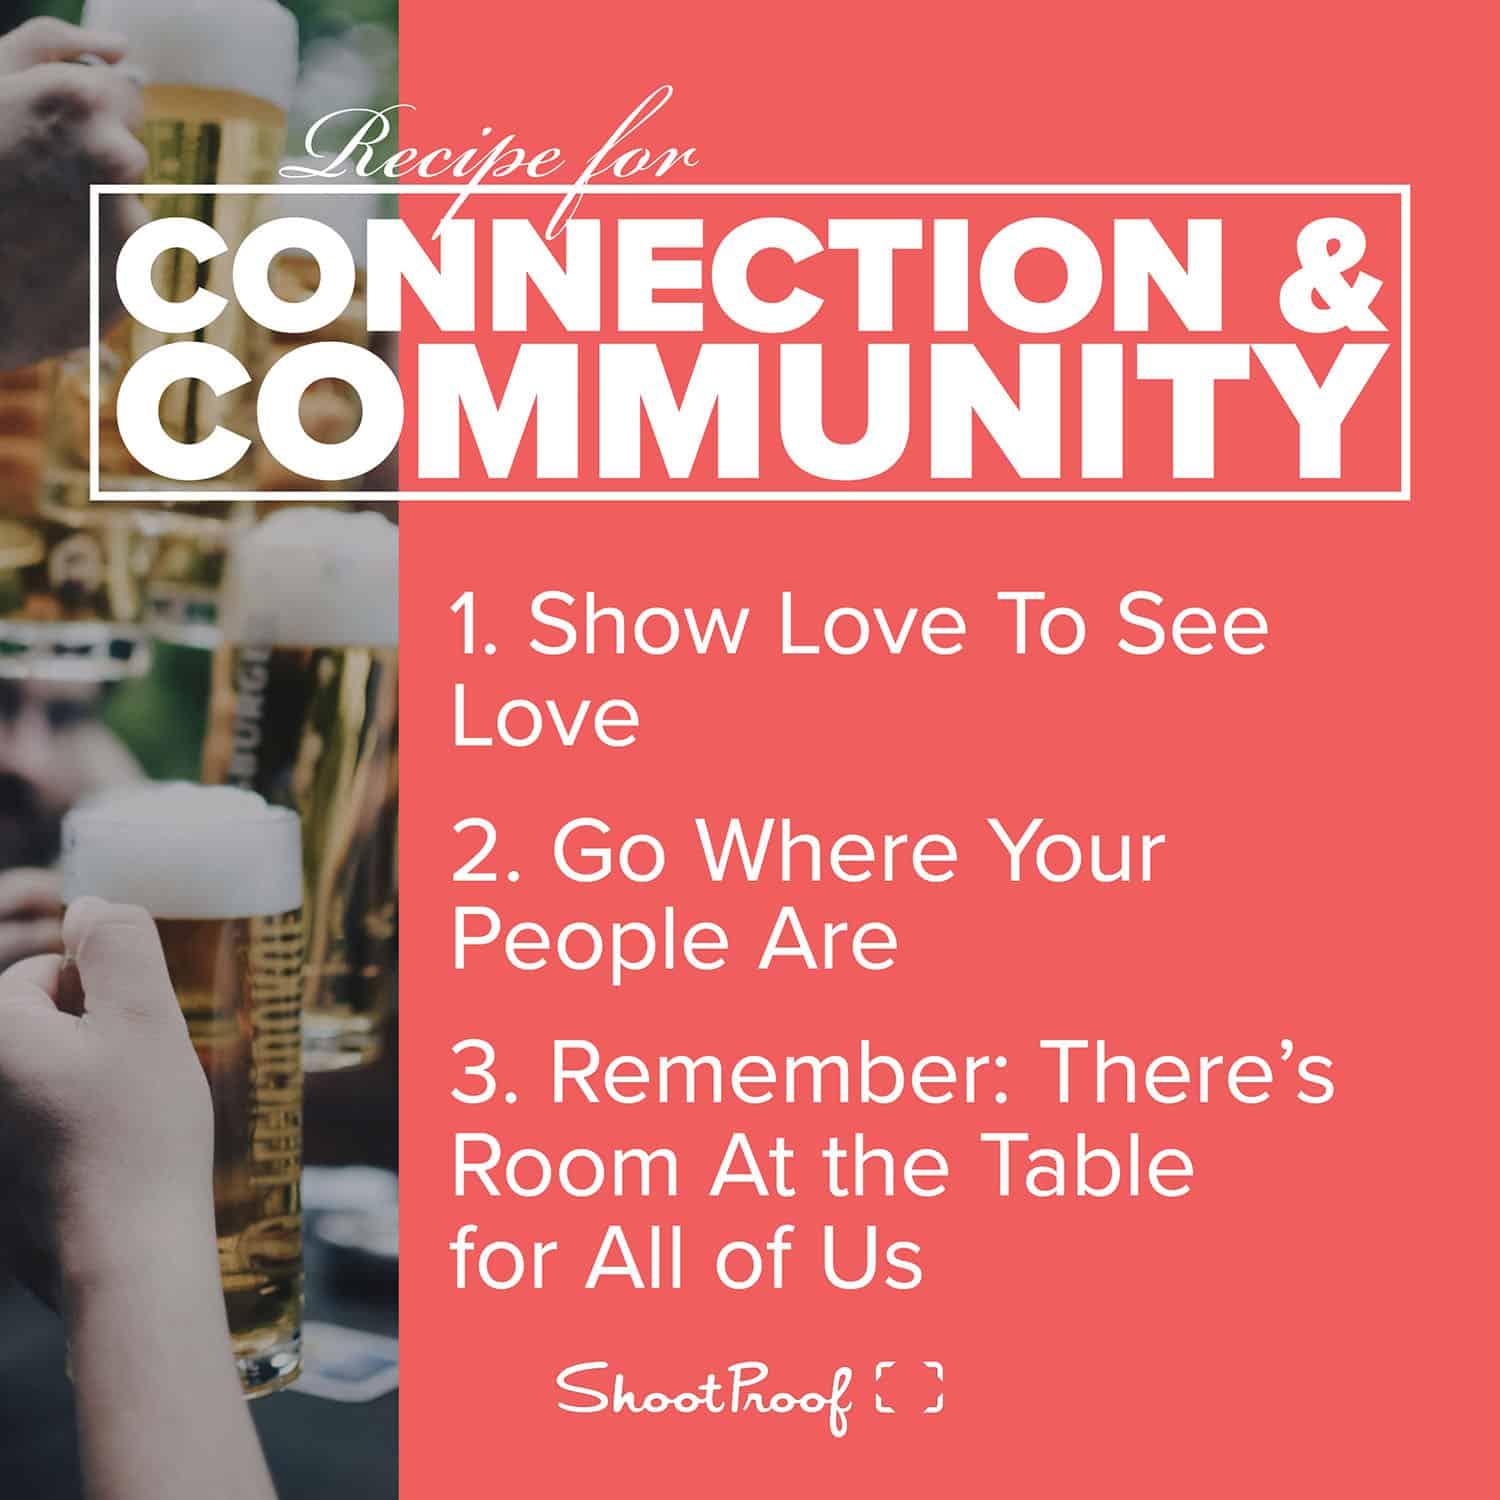 Learn Photography: Recipe for Connection & Community